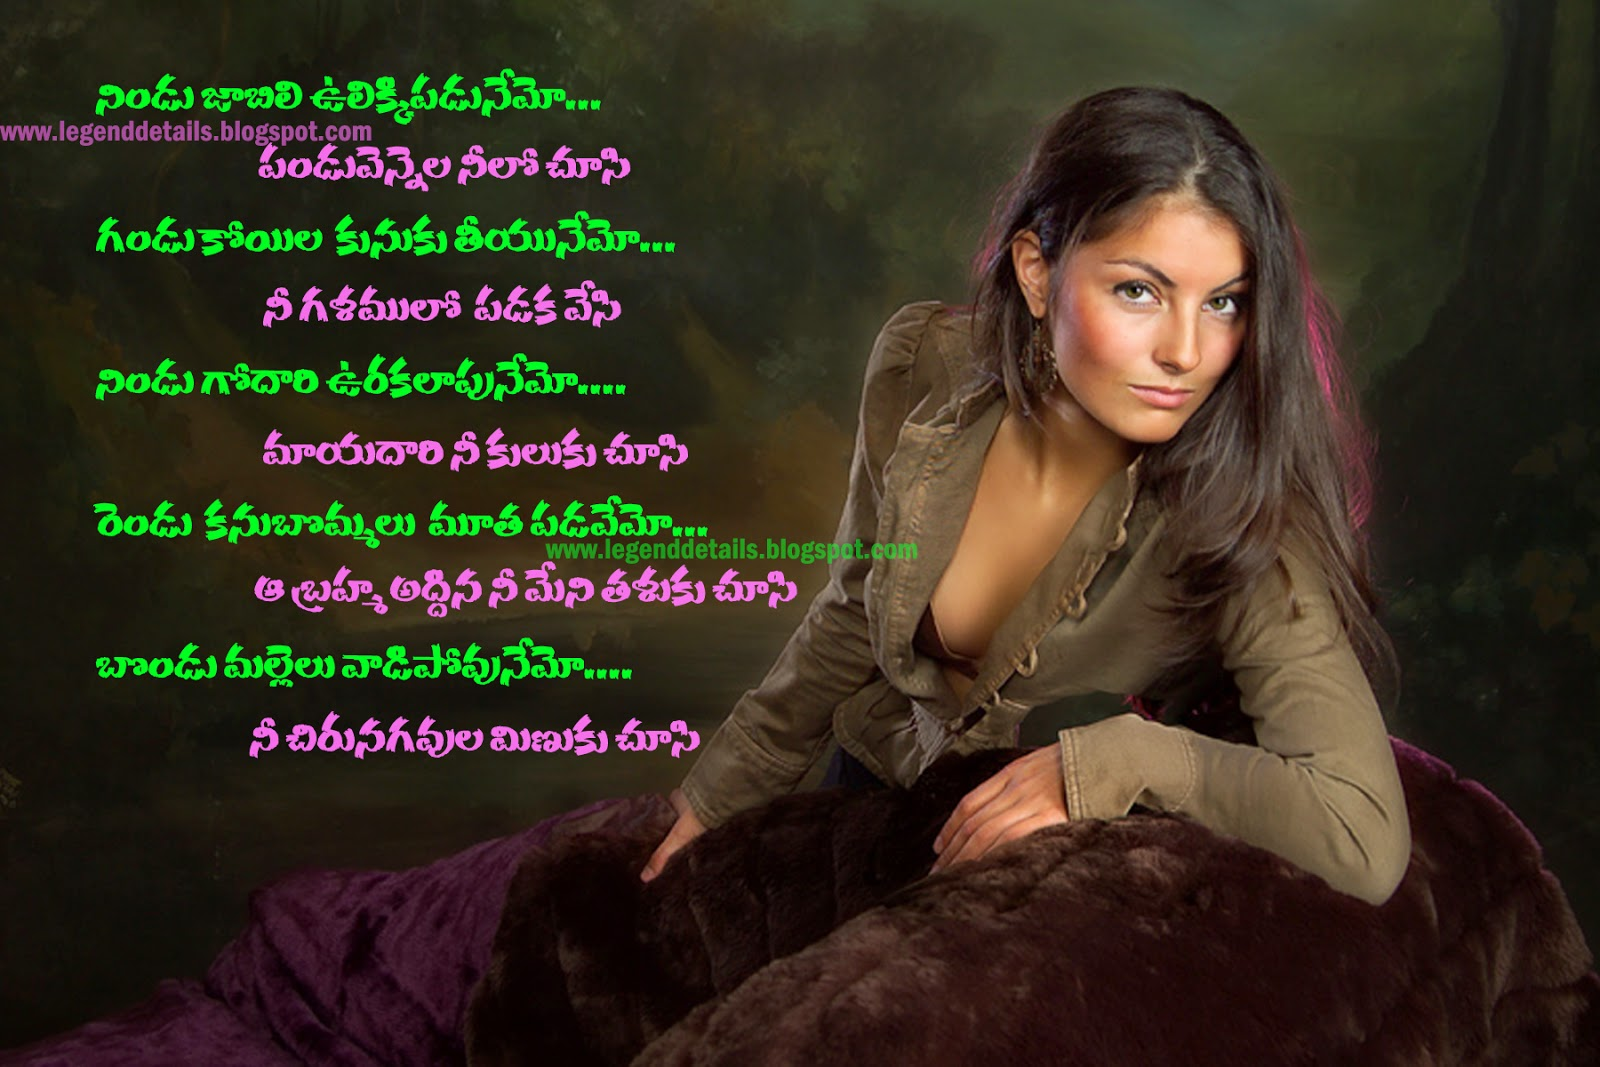 Deep Love Poetry About Her In Telugu Legendary Quotes